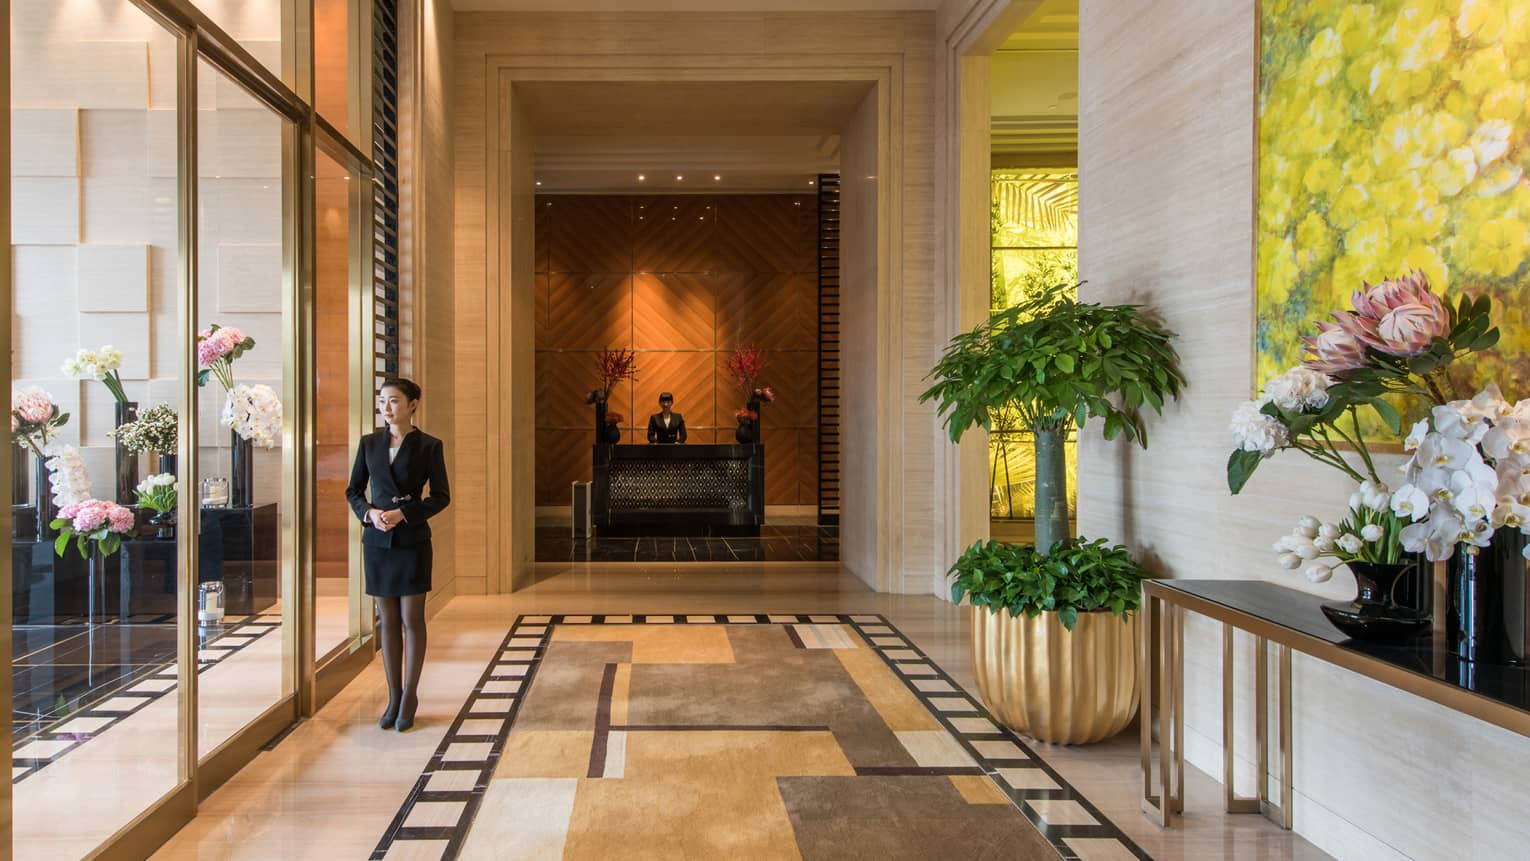 Concierge stands by sliding glass doors at residence entrance, lobby